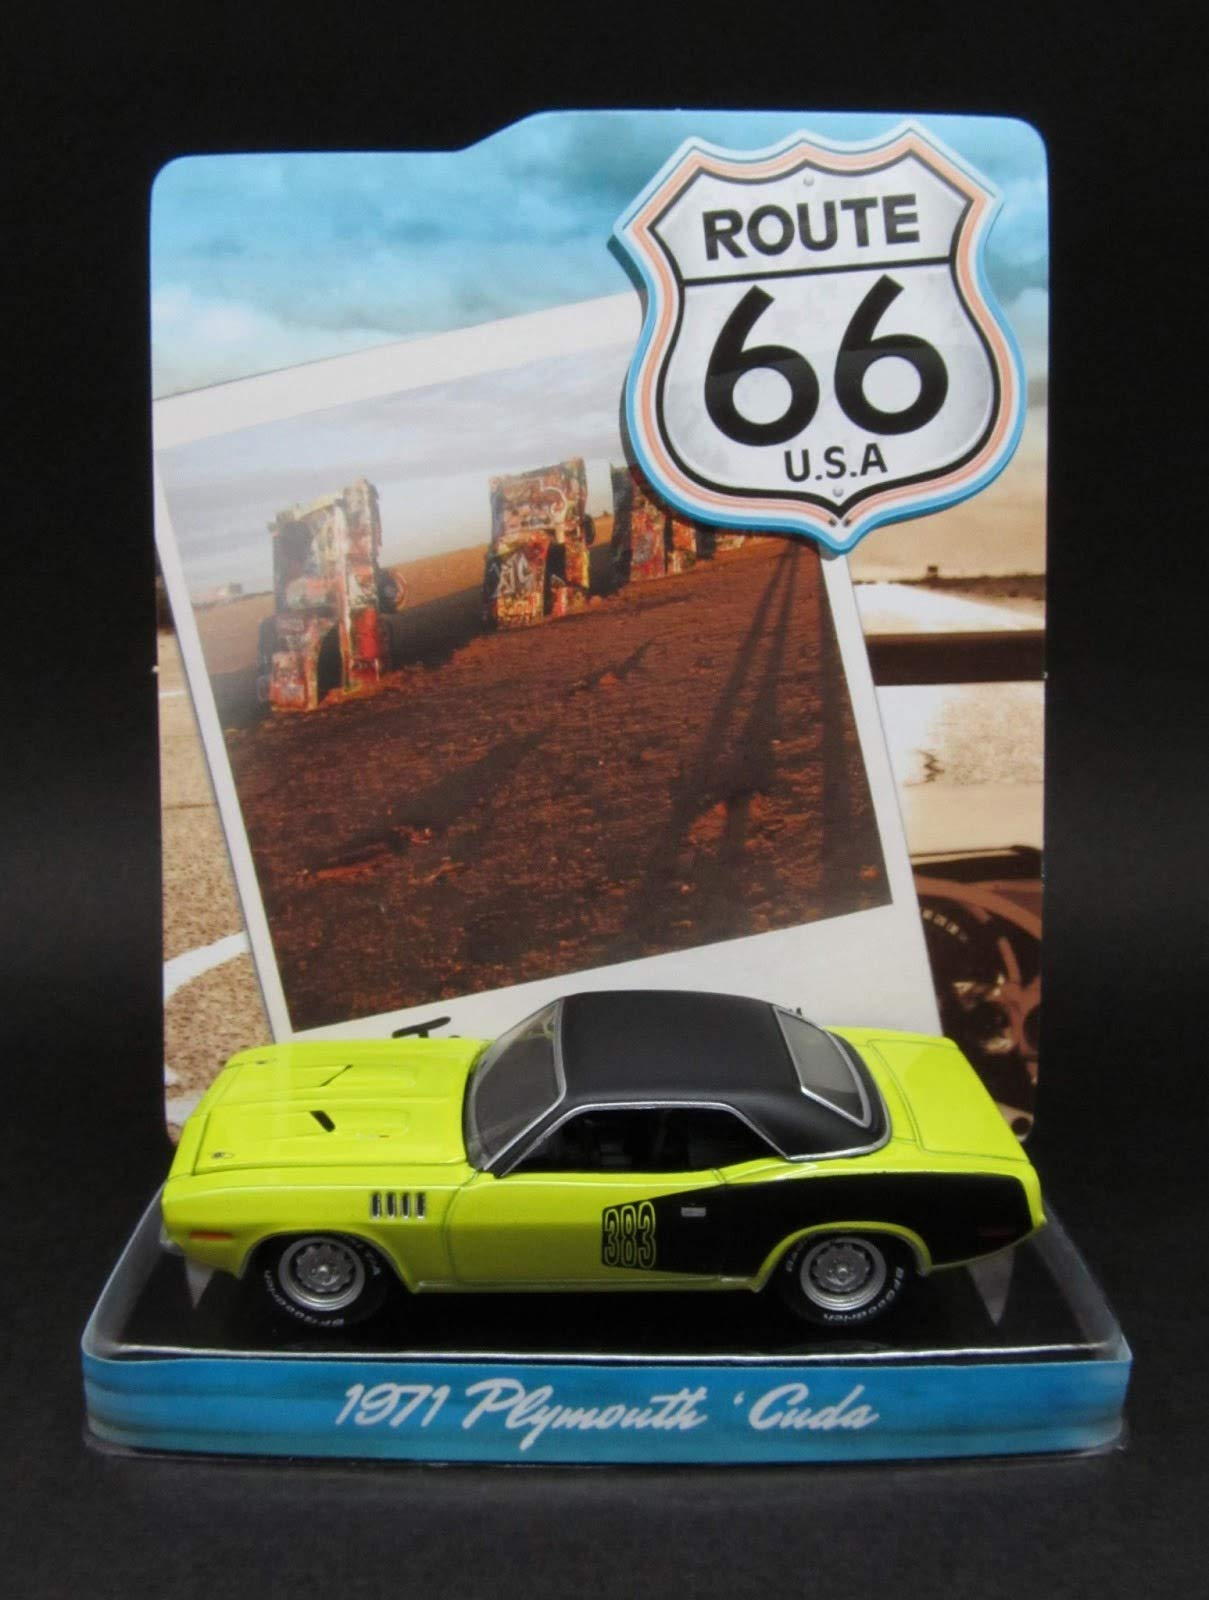 Greenlight SE 1/64 Route 66 U.S.A. Series 1 6-Car Set by Greenlight